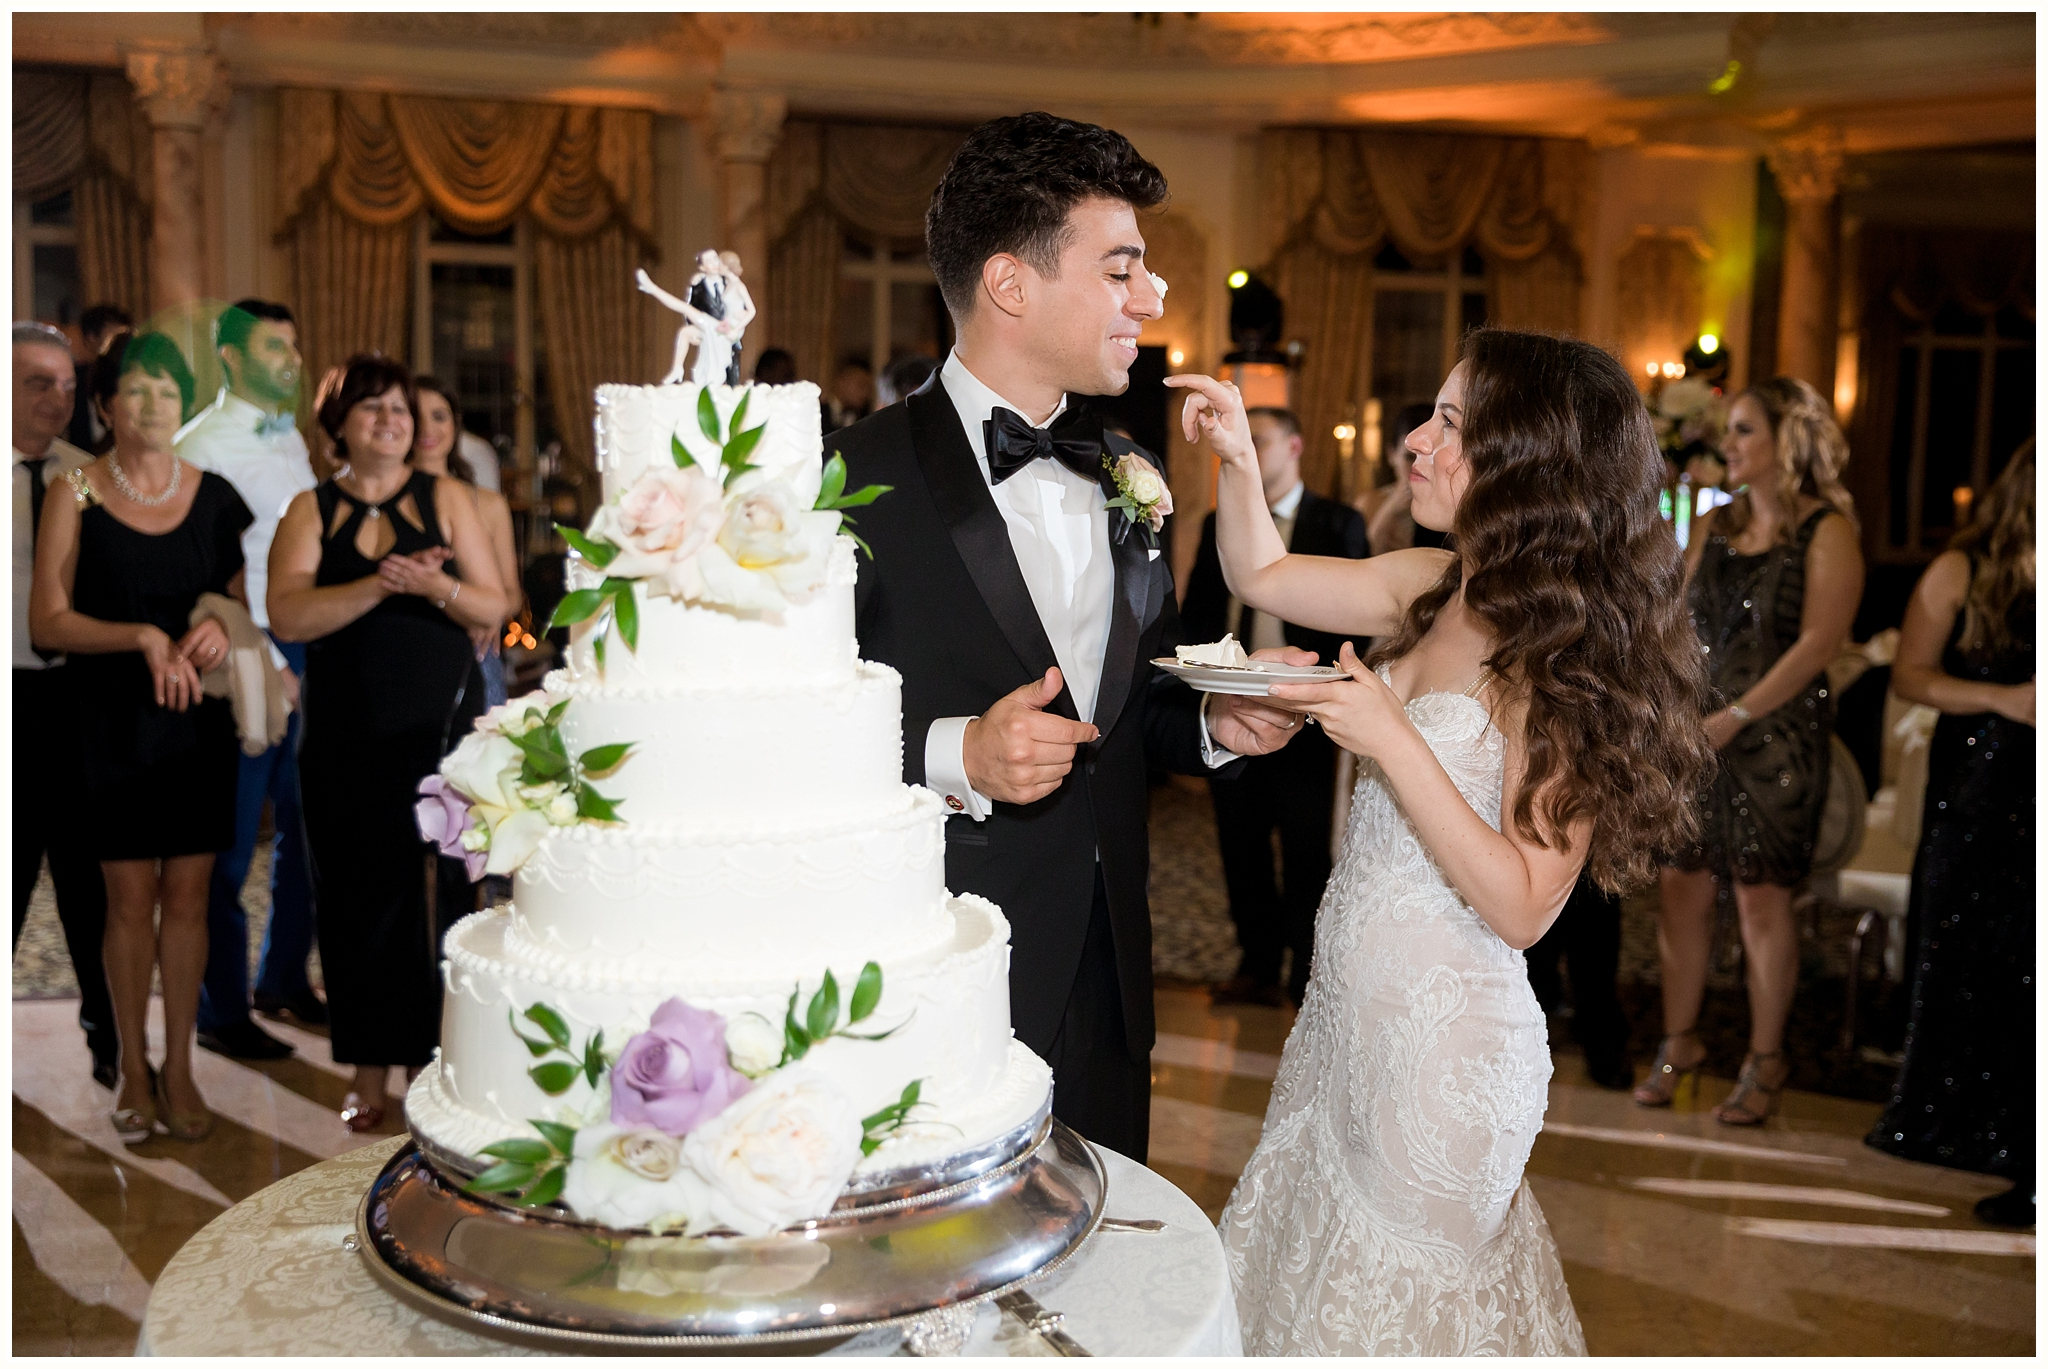 Pleasantdale Chateau Wedding NJ Wedding NYC Wedding Photographer_0060.jpg